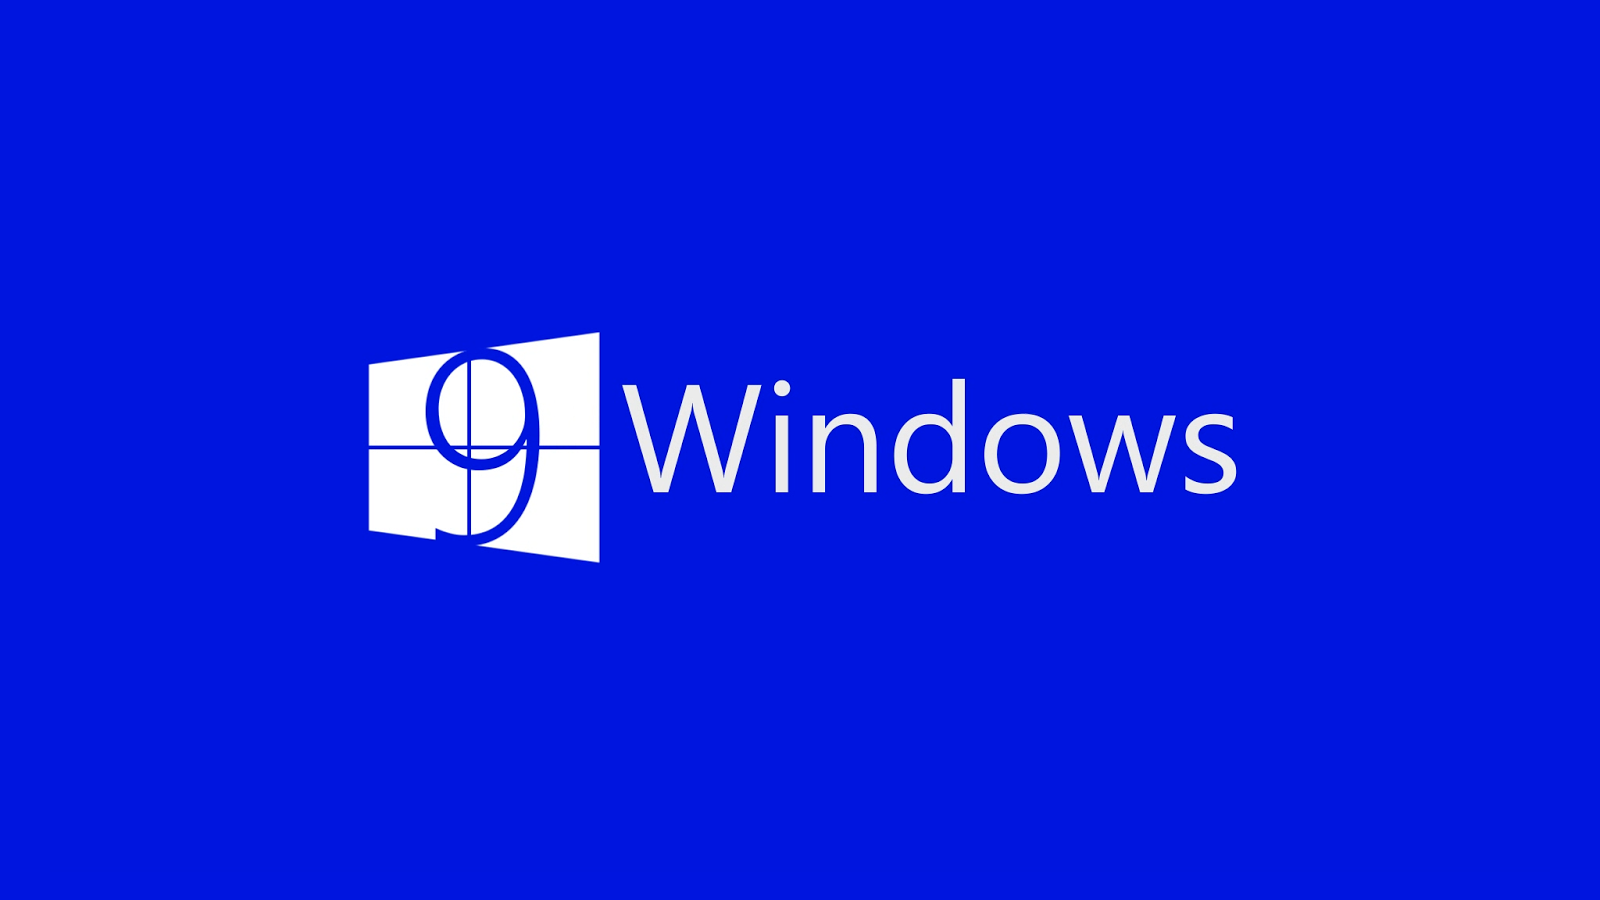 Wallpaper Windows 9